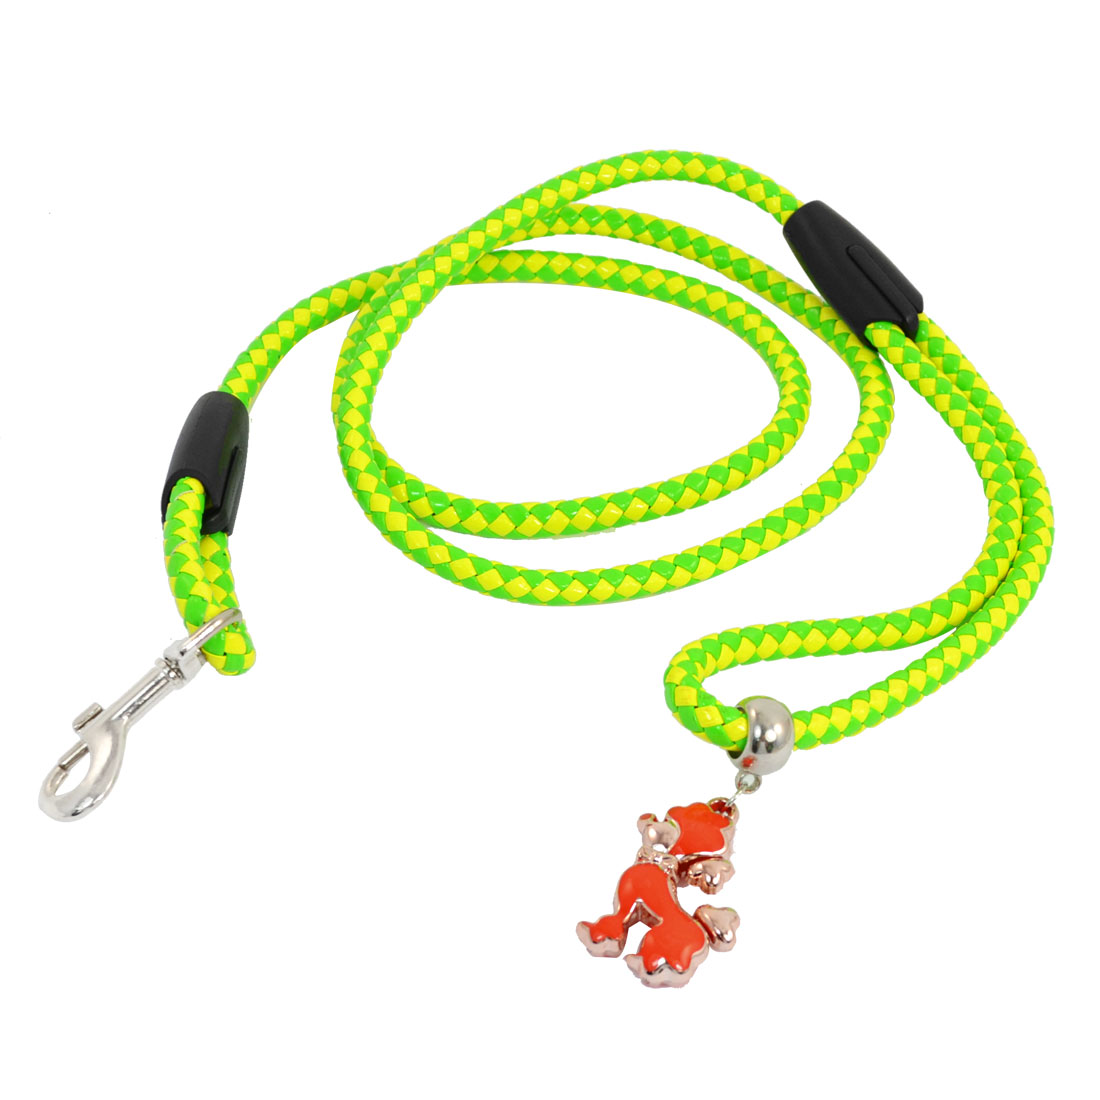 Yellow Green Plastic Twisted Rope Pulling Traction Leash for Pet Dog Doggy